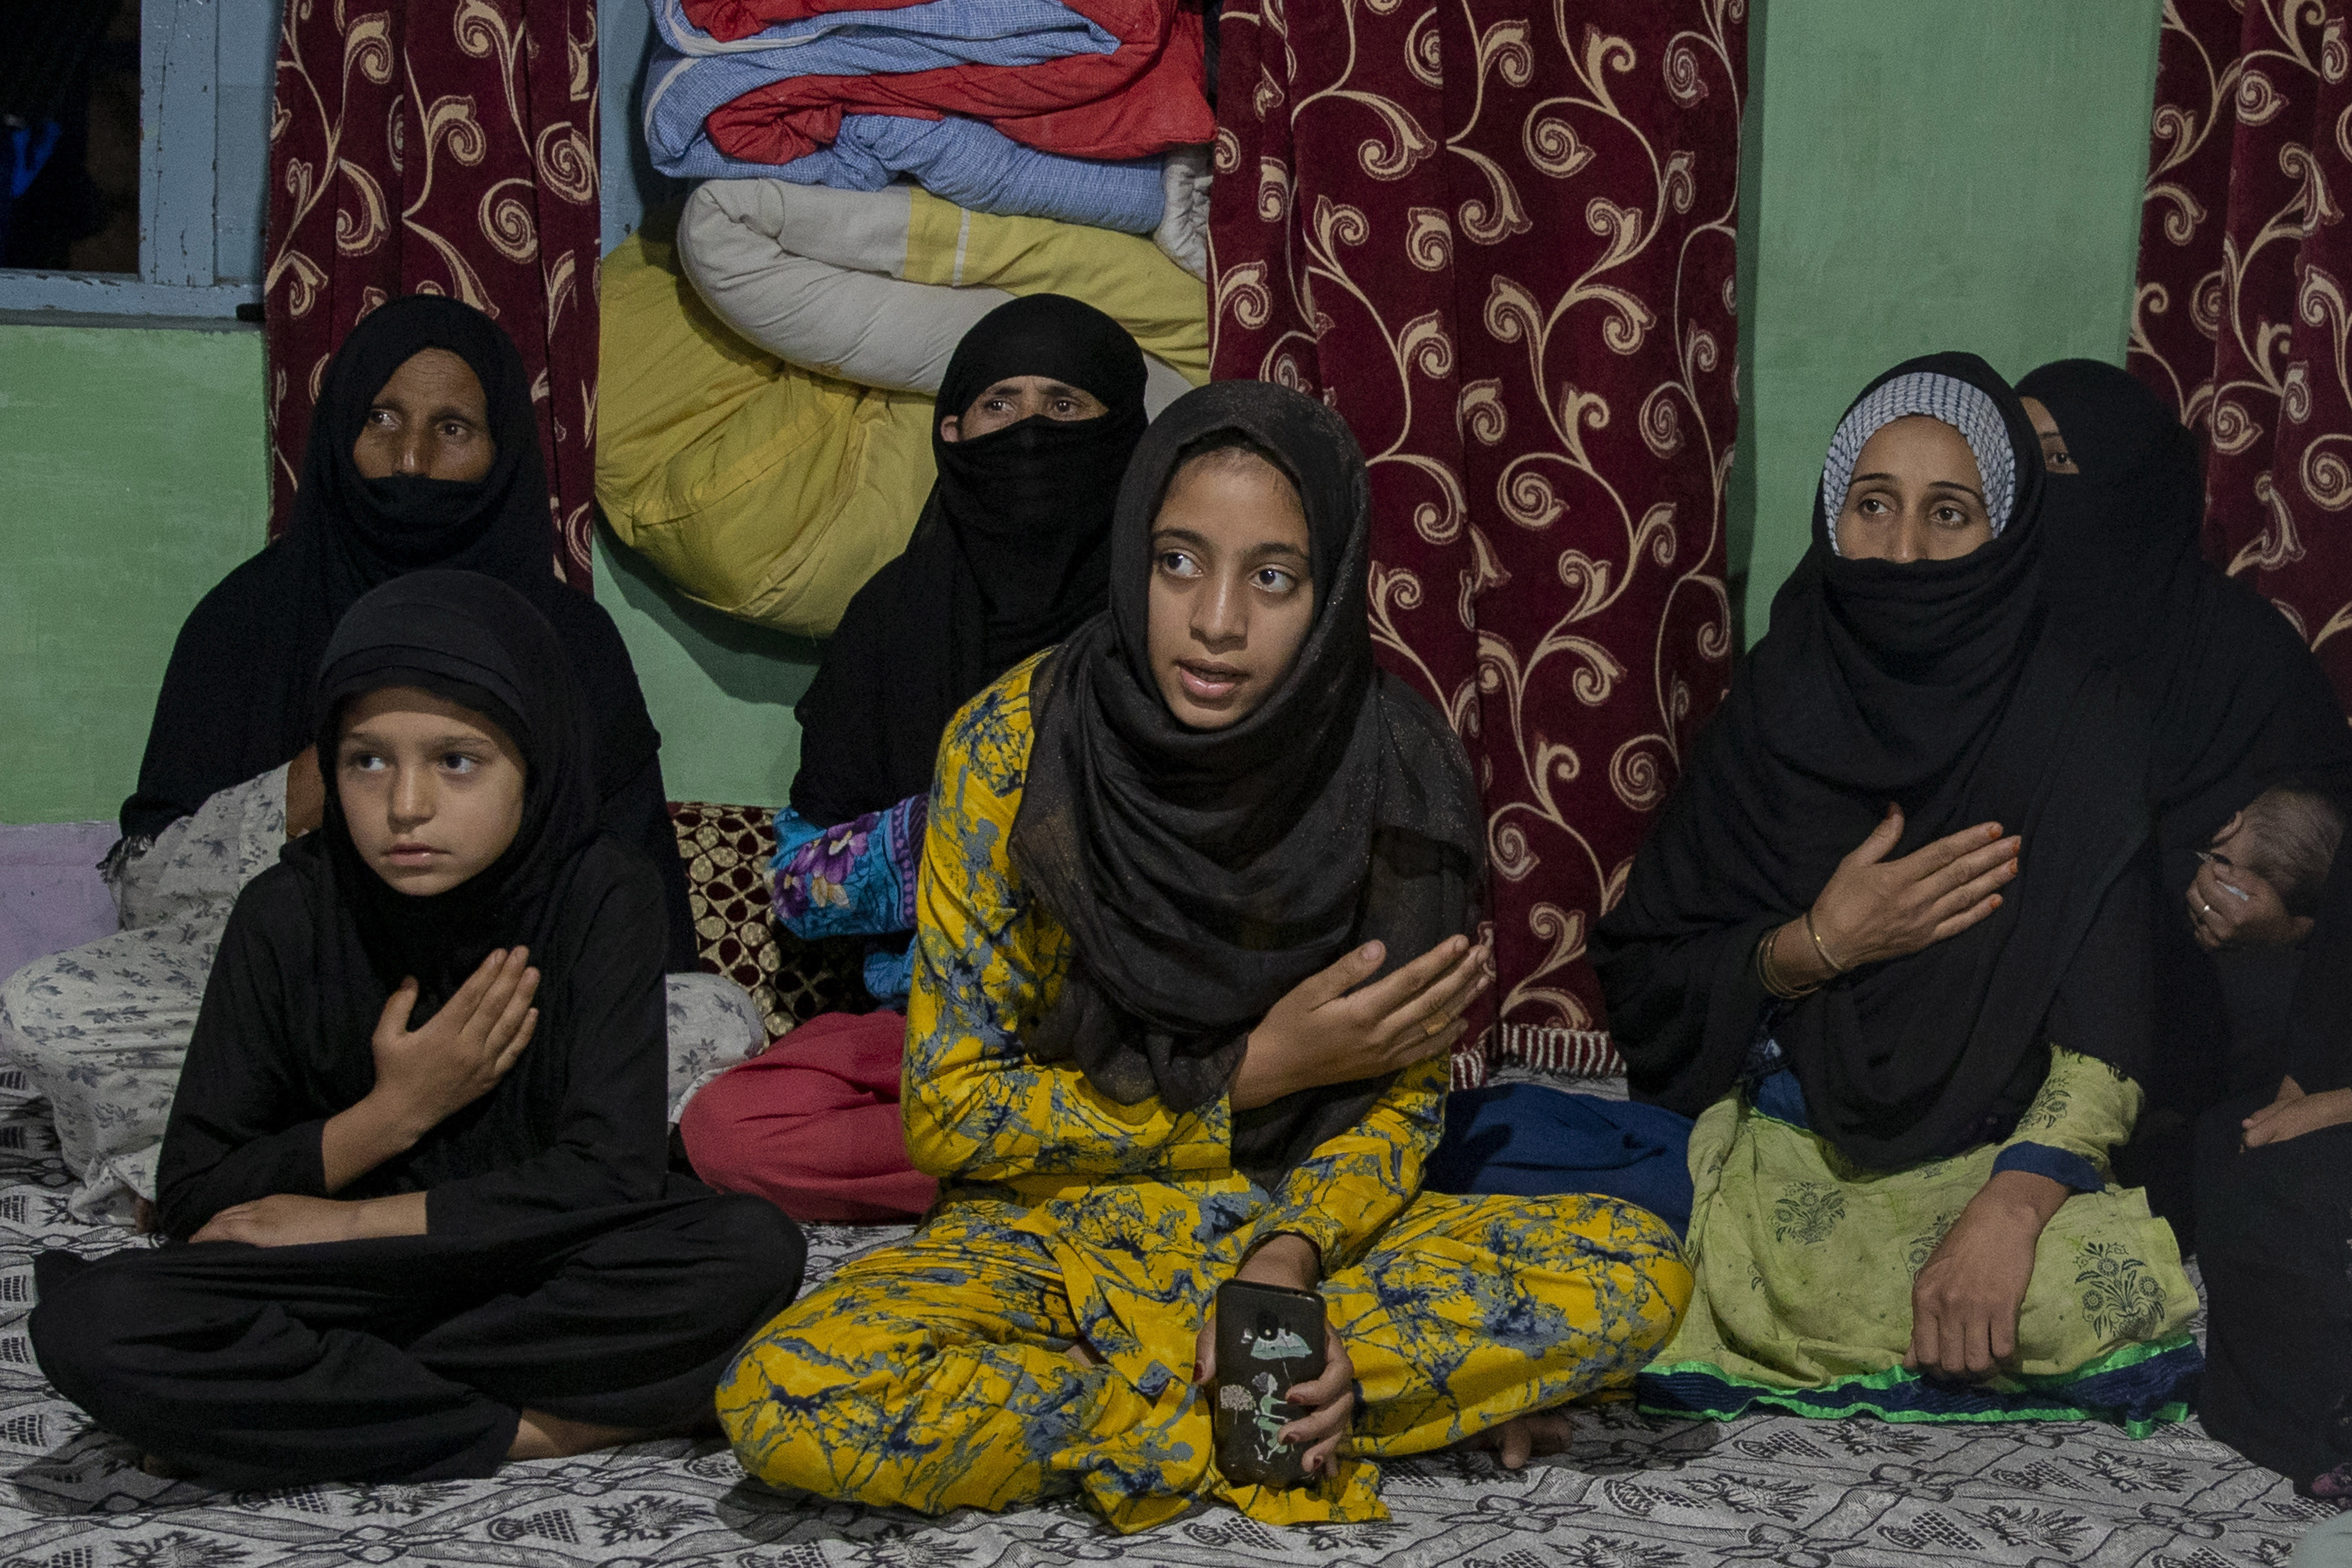 Kashmiri Shiite Muslims beat their chest as they watch religious broadcast on cable television to commemorate Muharram inside a residential house in the interiors of Dal Lake in Srinagar, Indian controlled Kashmir, Monday, Aug. 24, 2020. Observing the Muslim month of Muharram, which marks the martyrdom of the Prophet Muhammad's grandson in the battle of Karbala, is an article of faith. But as the coronavirus spreads in Indian-controlled Kashmir, Shiite Muslims prefer to commemorate the holy days inside their home following the advice of religious scholars and health experts in the disputed region's main city. (AP Photo/Dar Yasin)